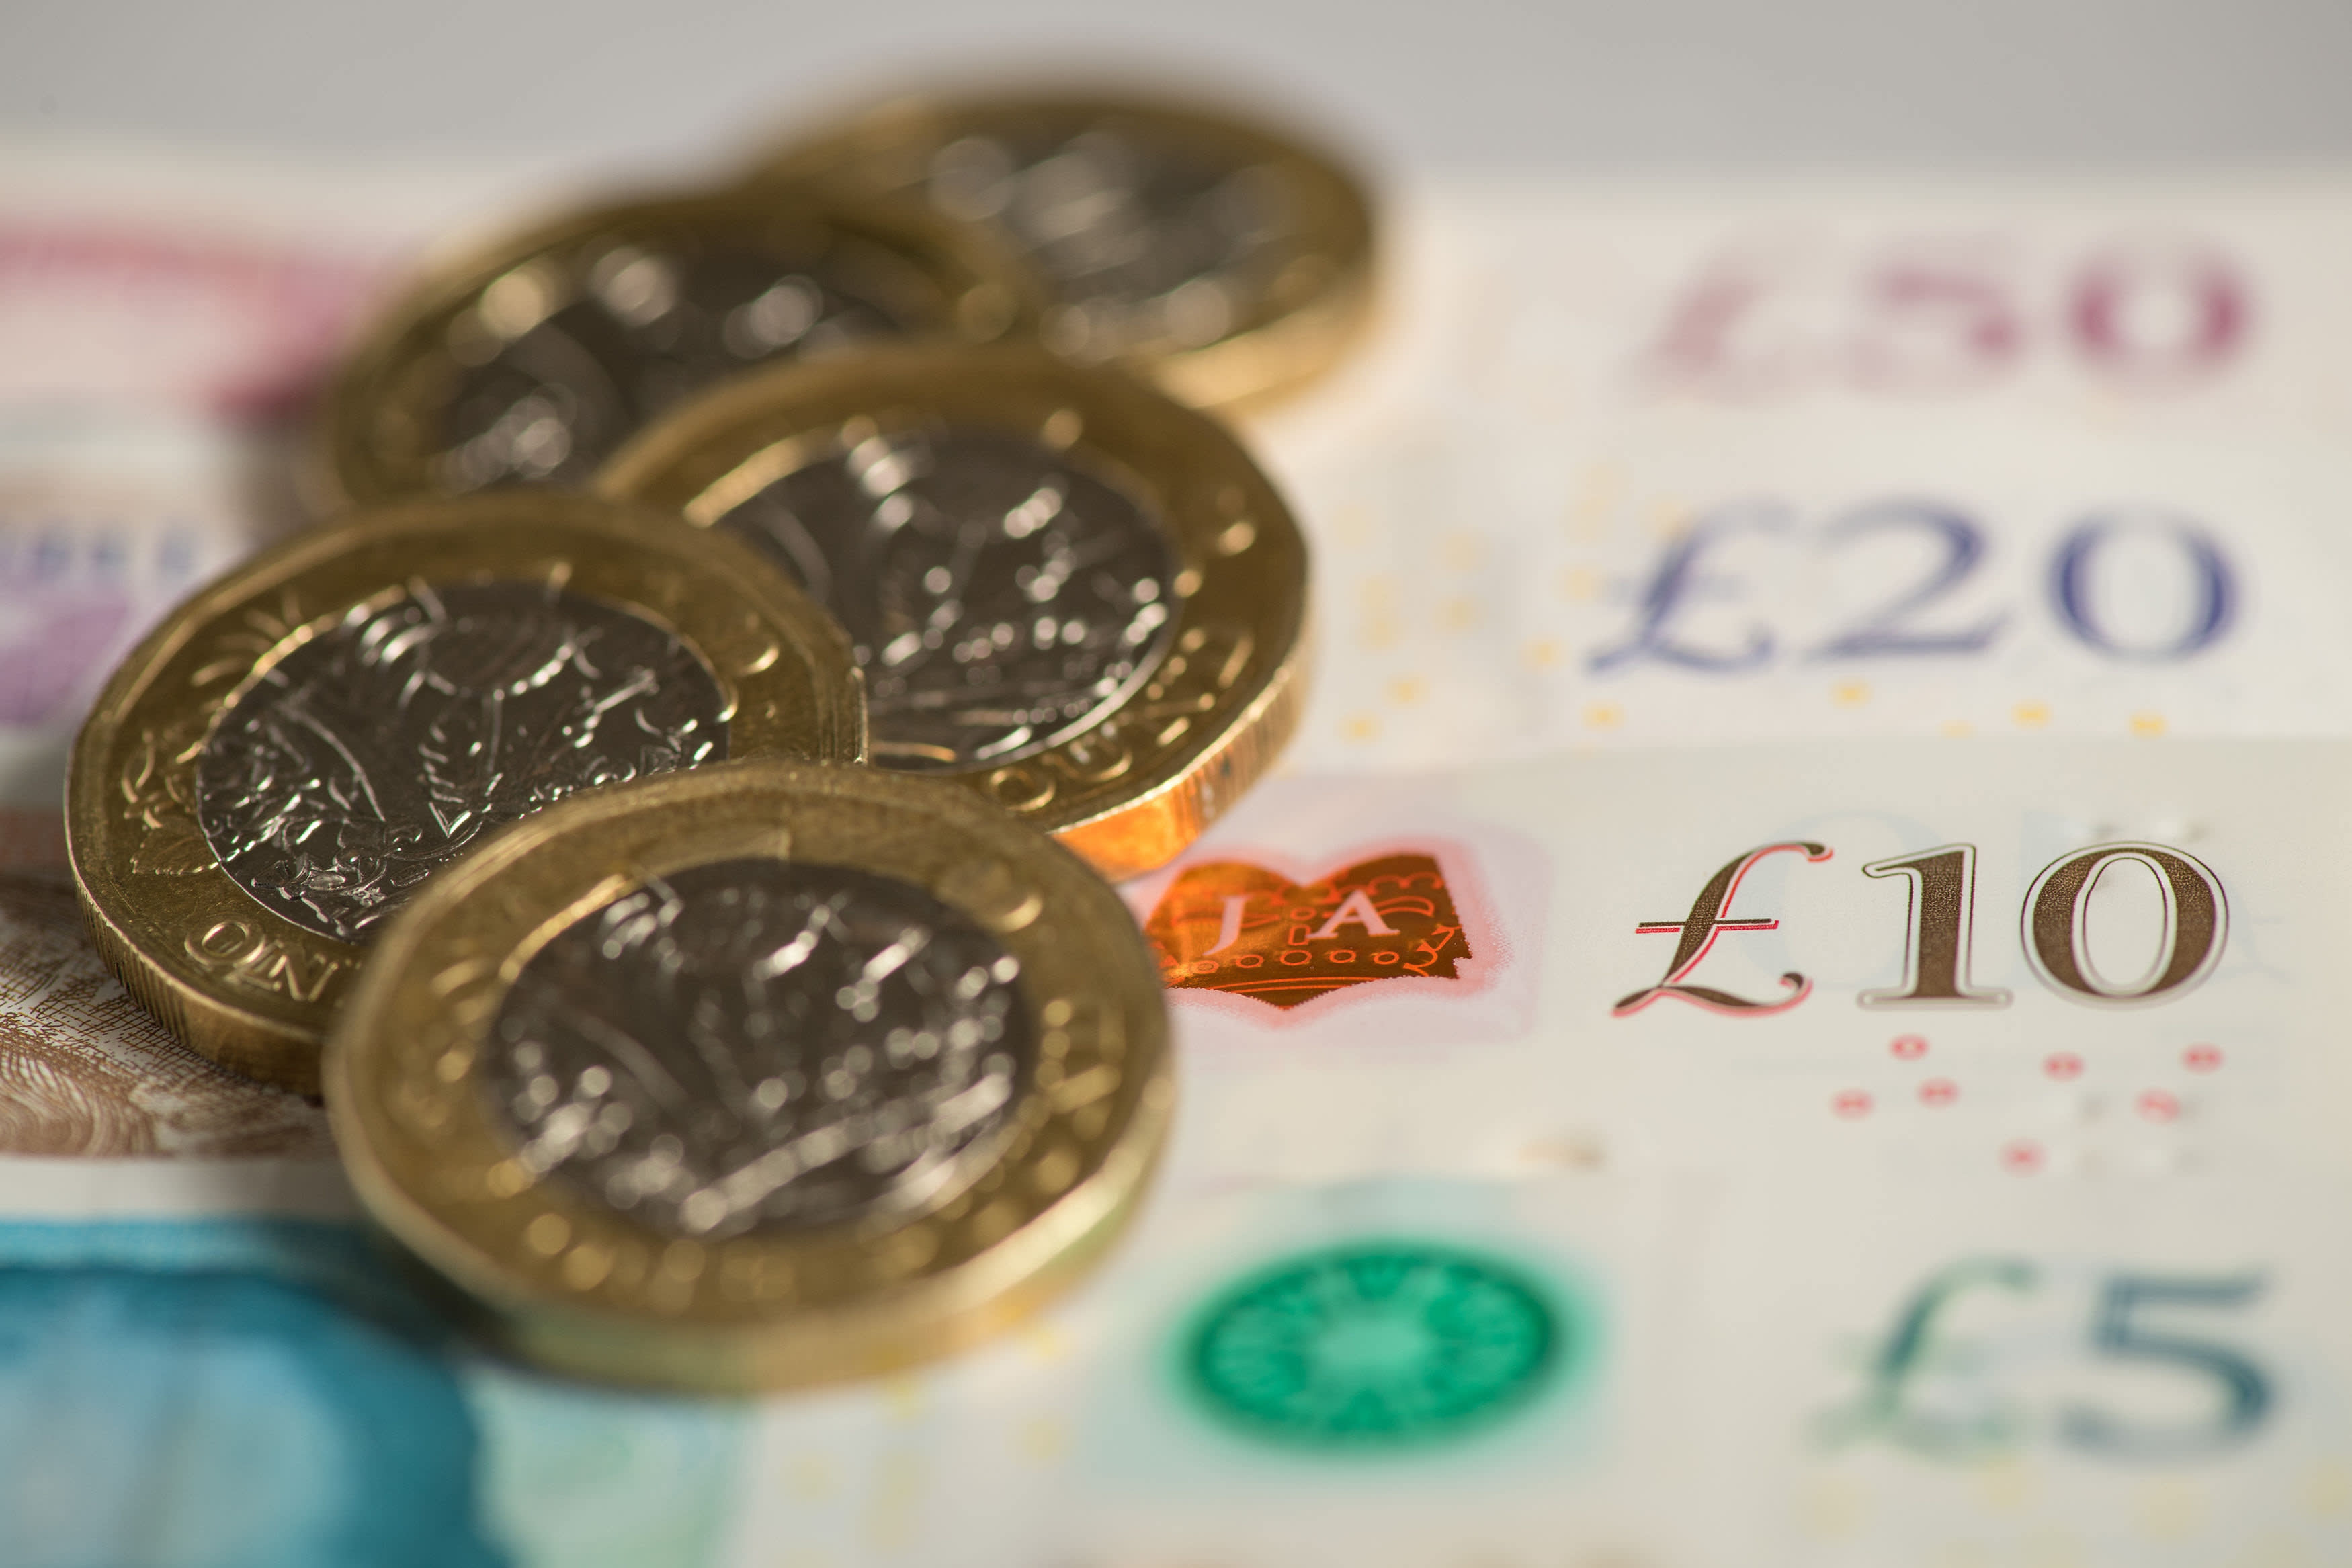 Significant Covid scheme fraud risk 'justified'